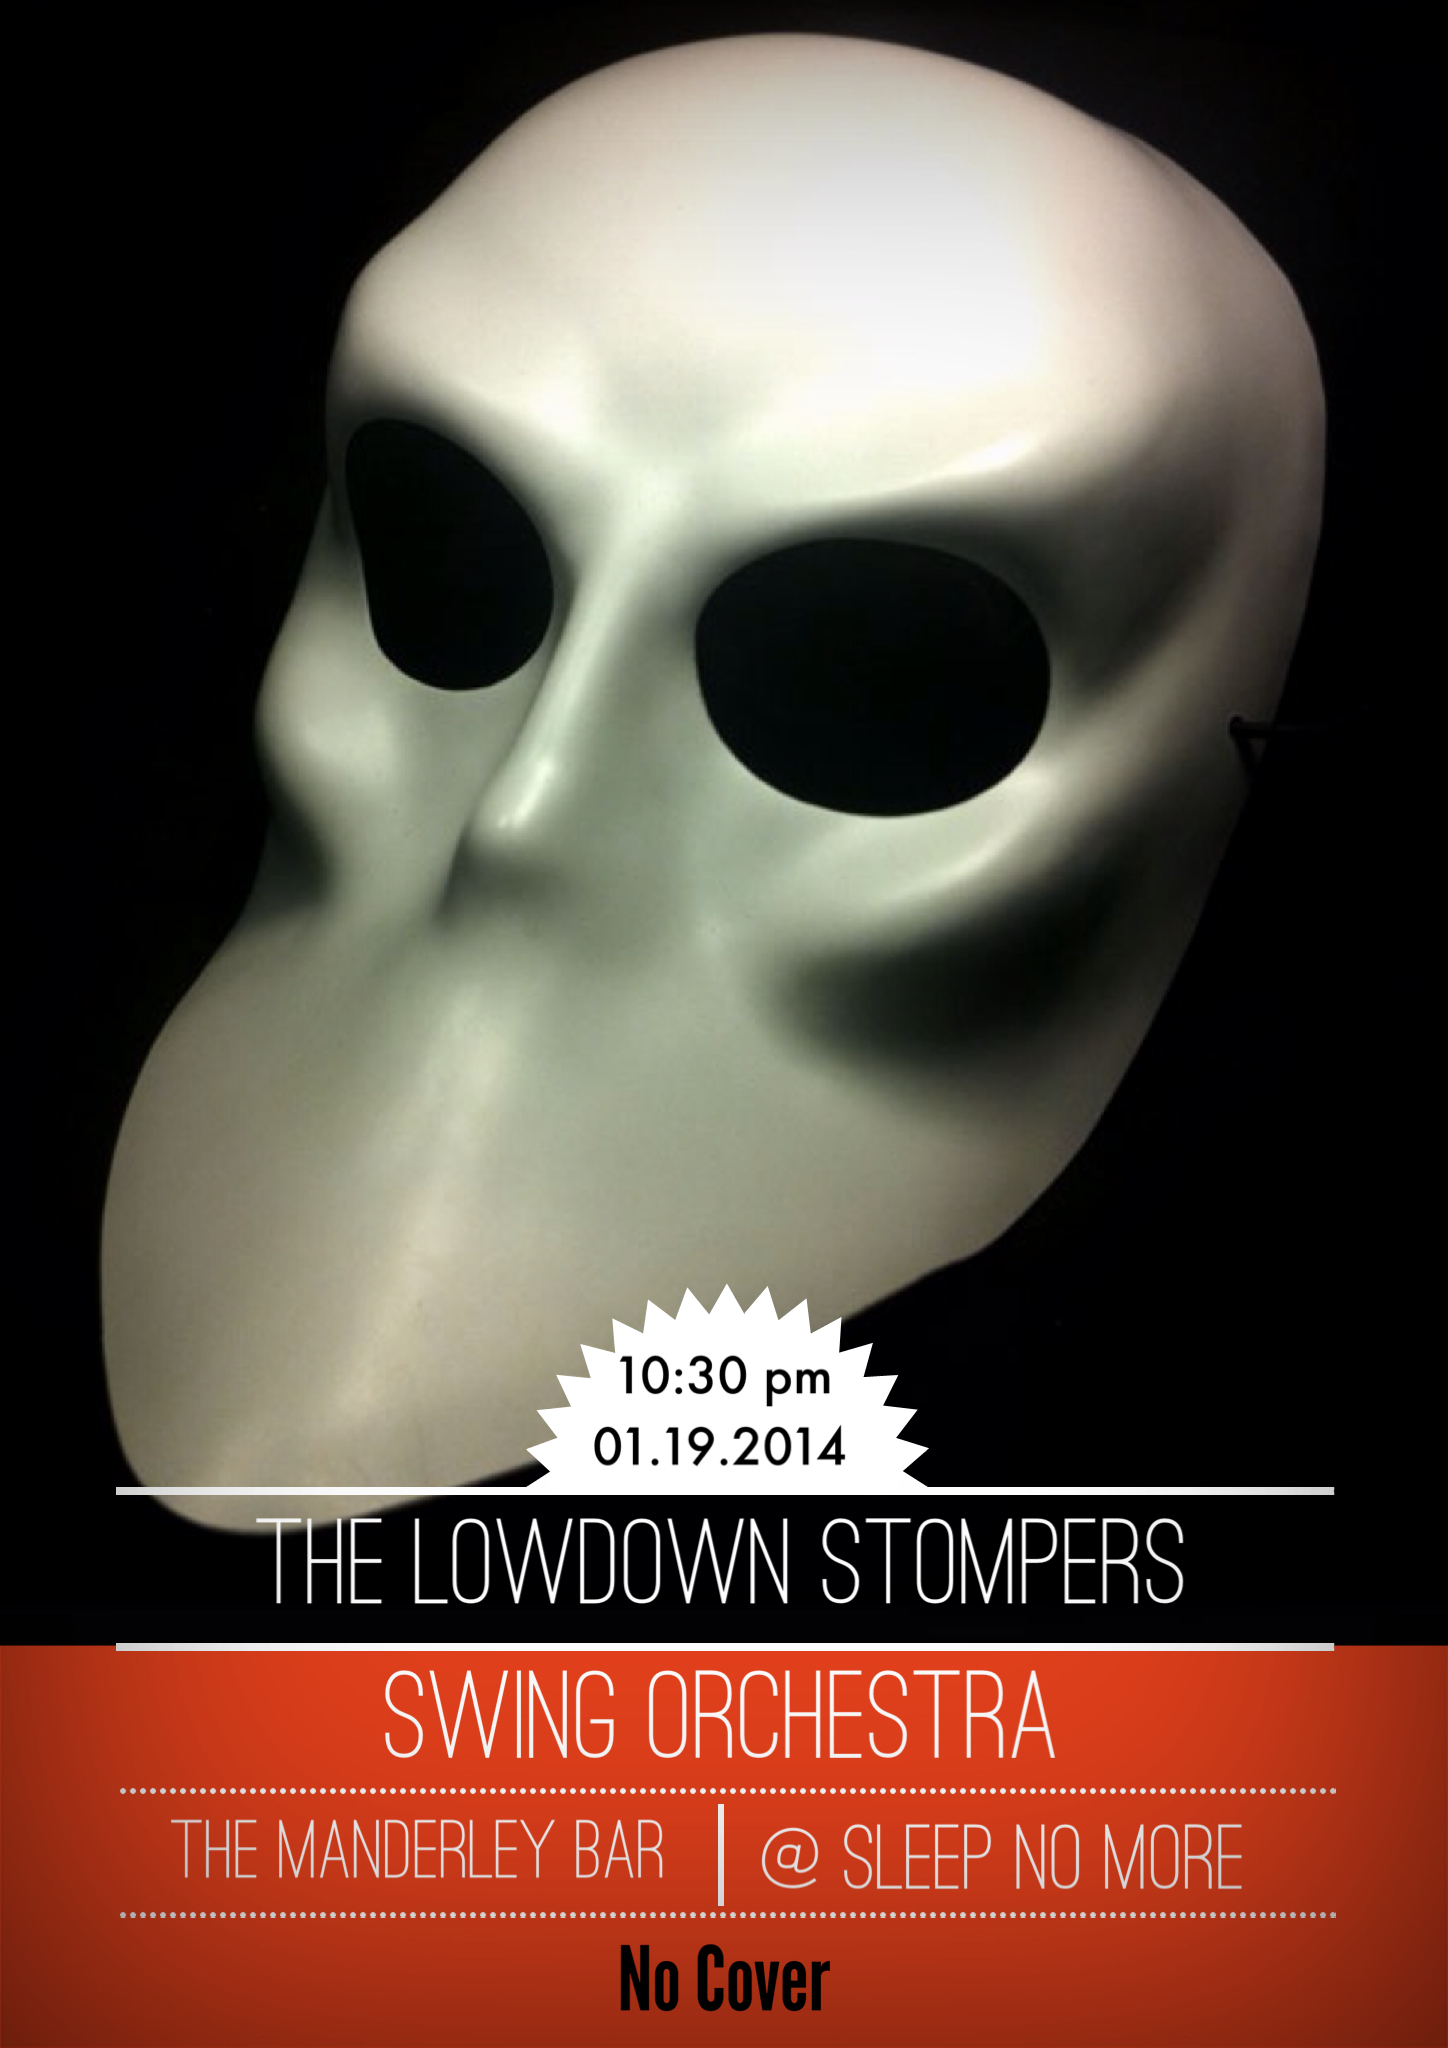 Debut Showcase of The Lowdown Stompers Swing Orchestra!